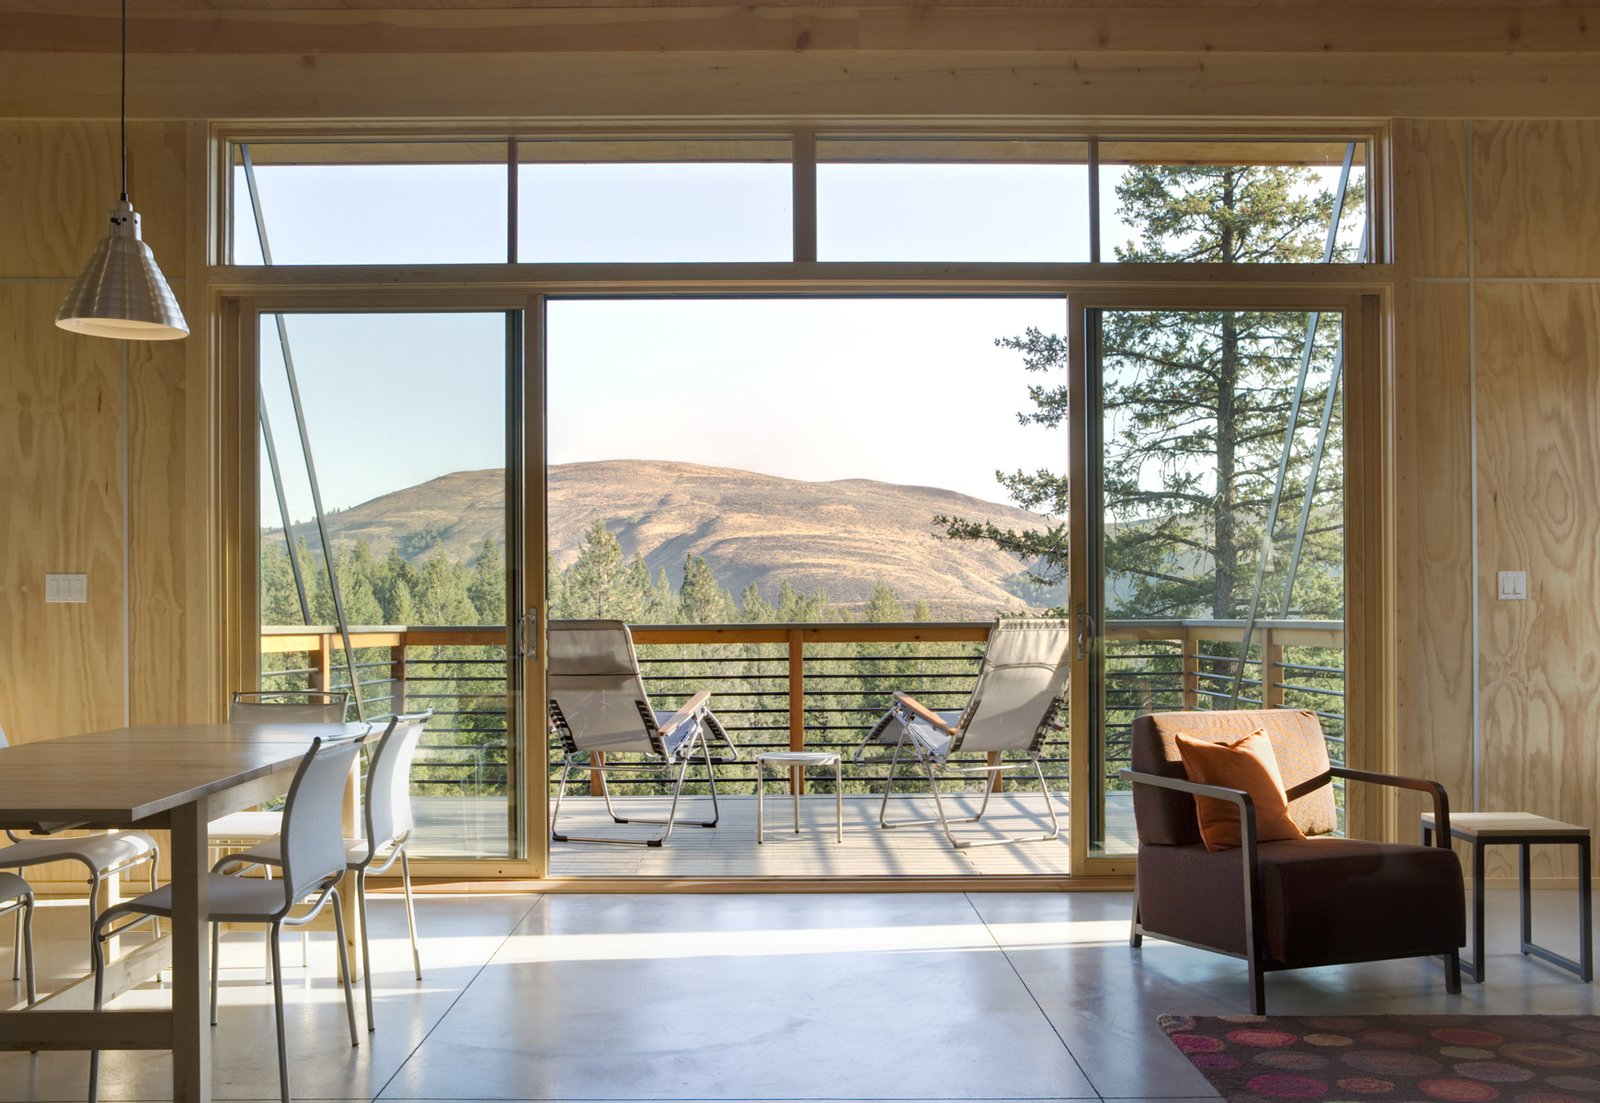 Supported by steel strips, the balcony extends outwards to meet the valley below. Fully-glazed sliding doors and a clerestory window provide a view.